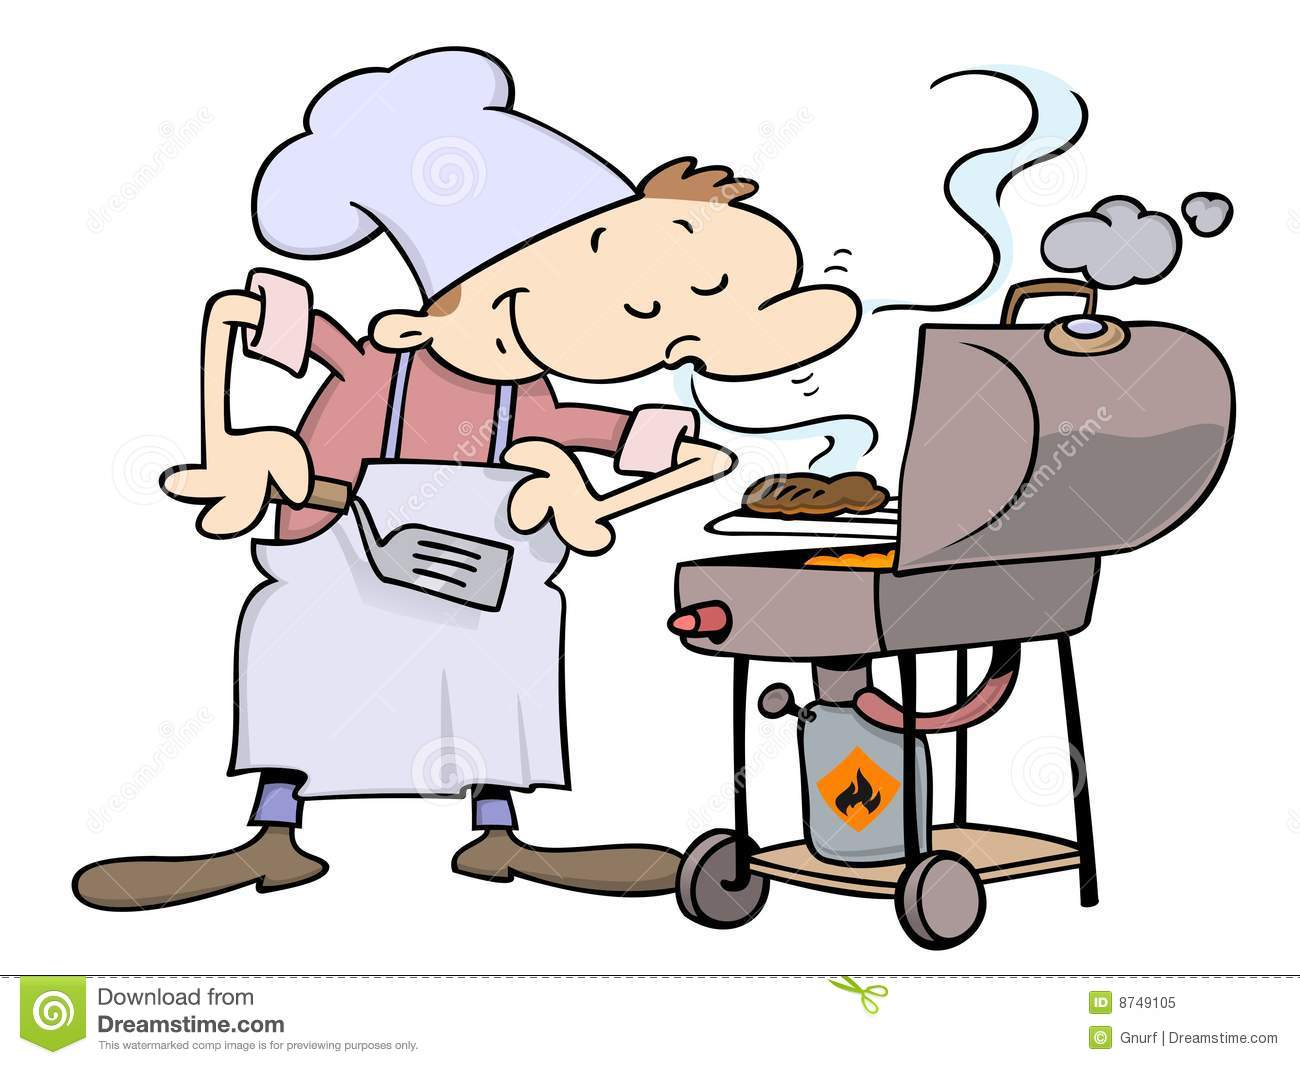 095533e486e0f24504d8bdf738e78d90_-resolution-1300x1065-grilled-hamburger-clipart_1300-1065.jpeg